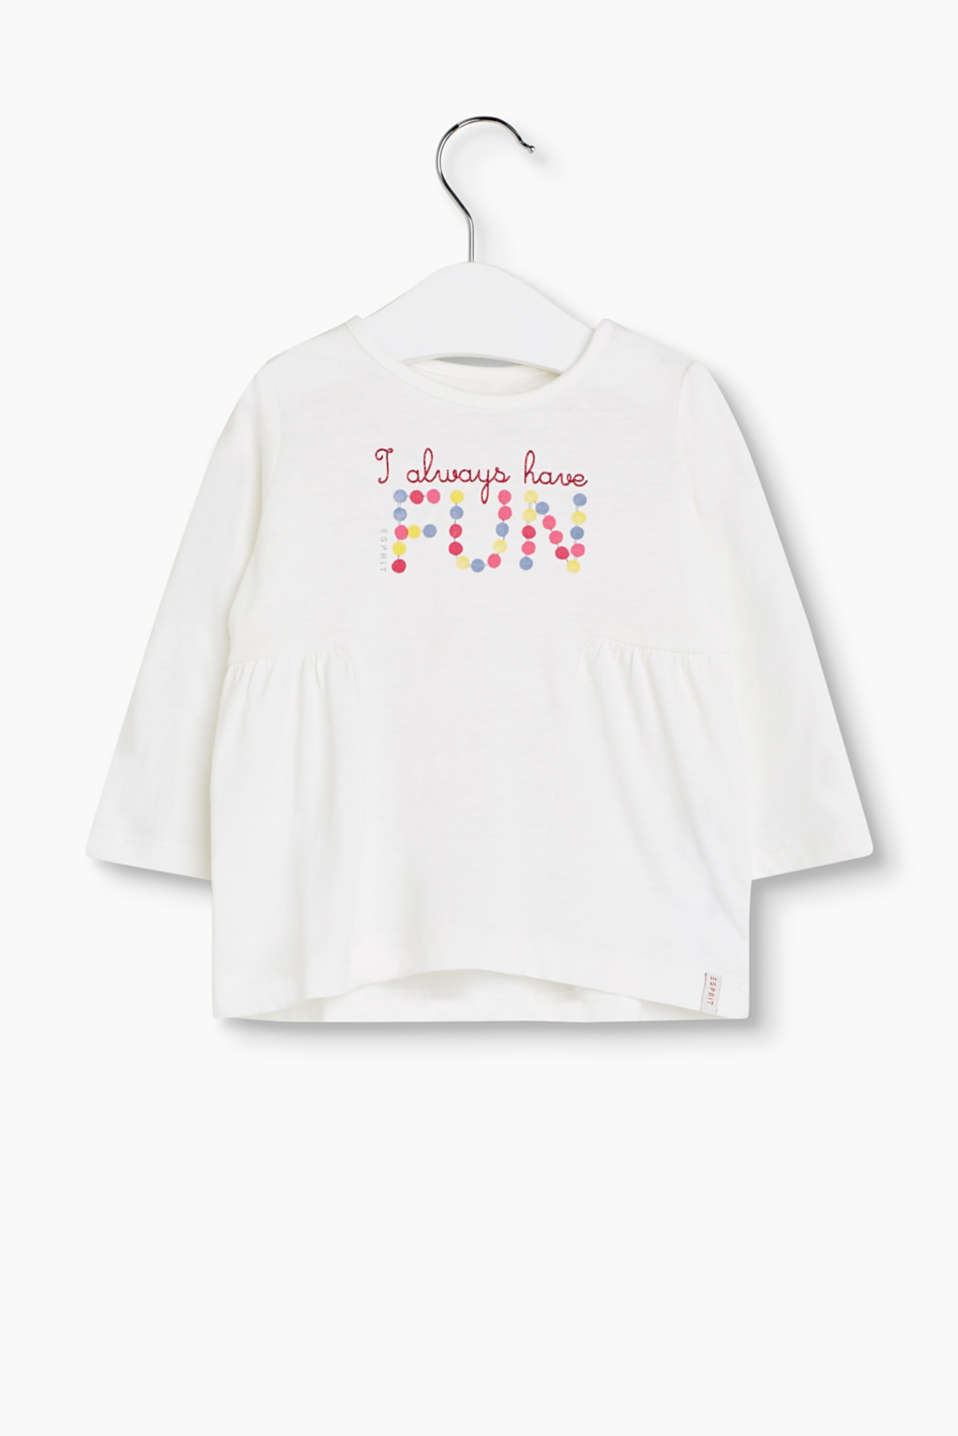 ALWAYS HAVE FUN – long sleeve top in soft cotton jersey